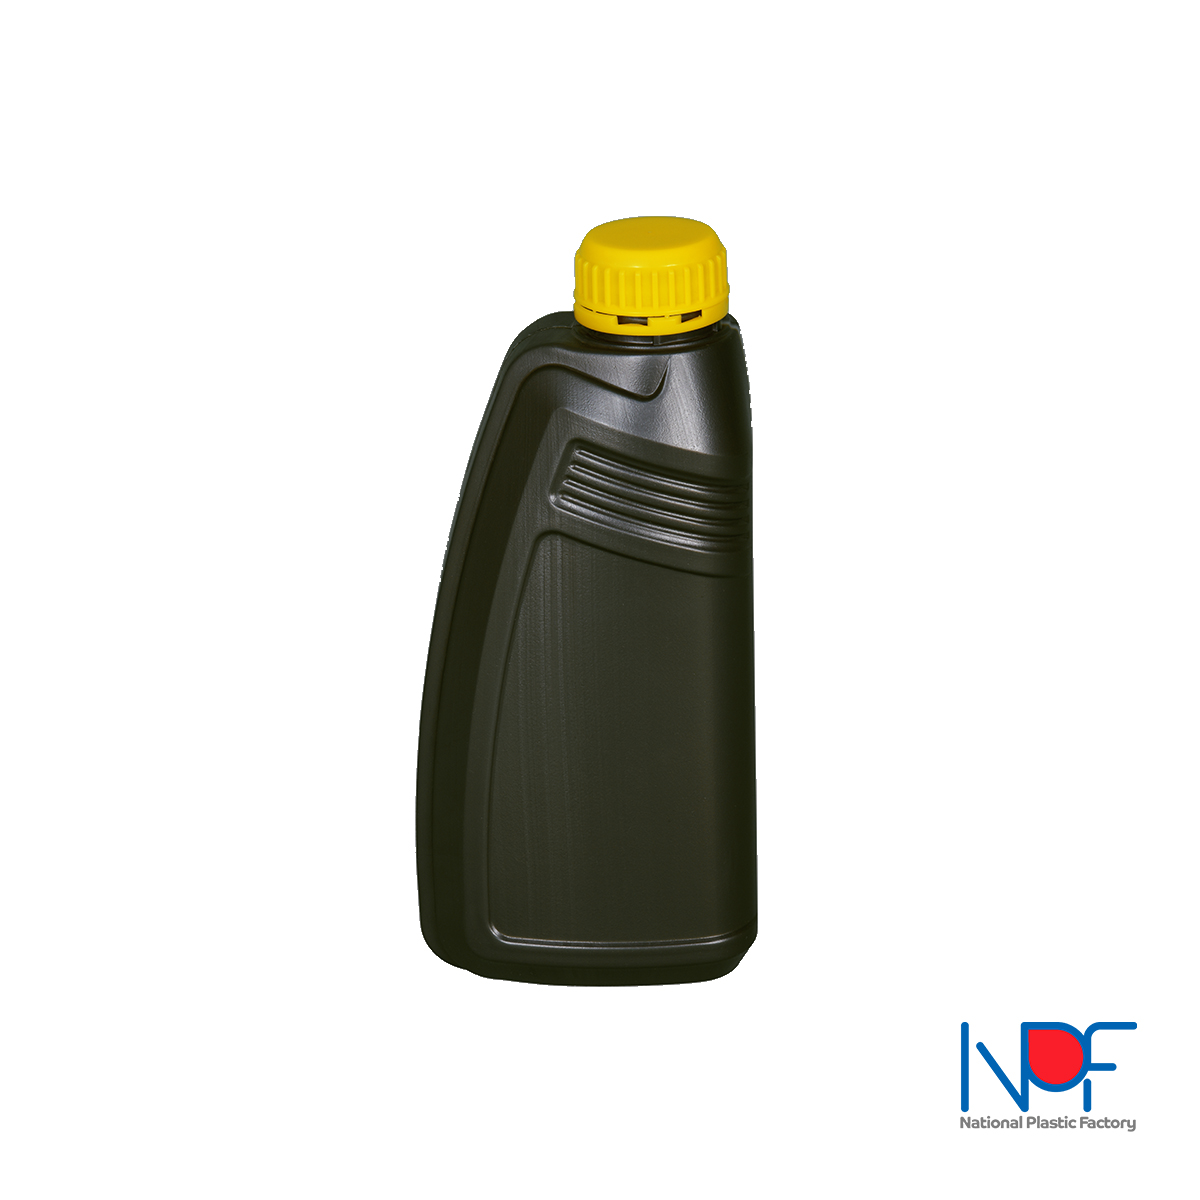 Motor Oil Bottle 1 Liter New Model National Plastic